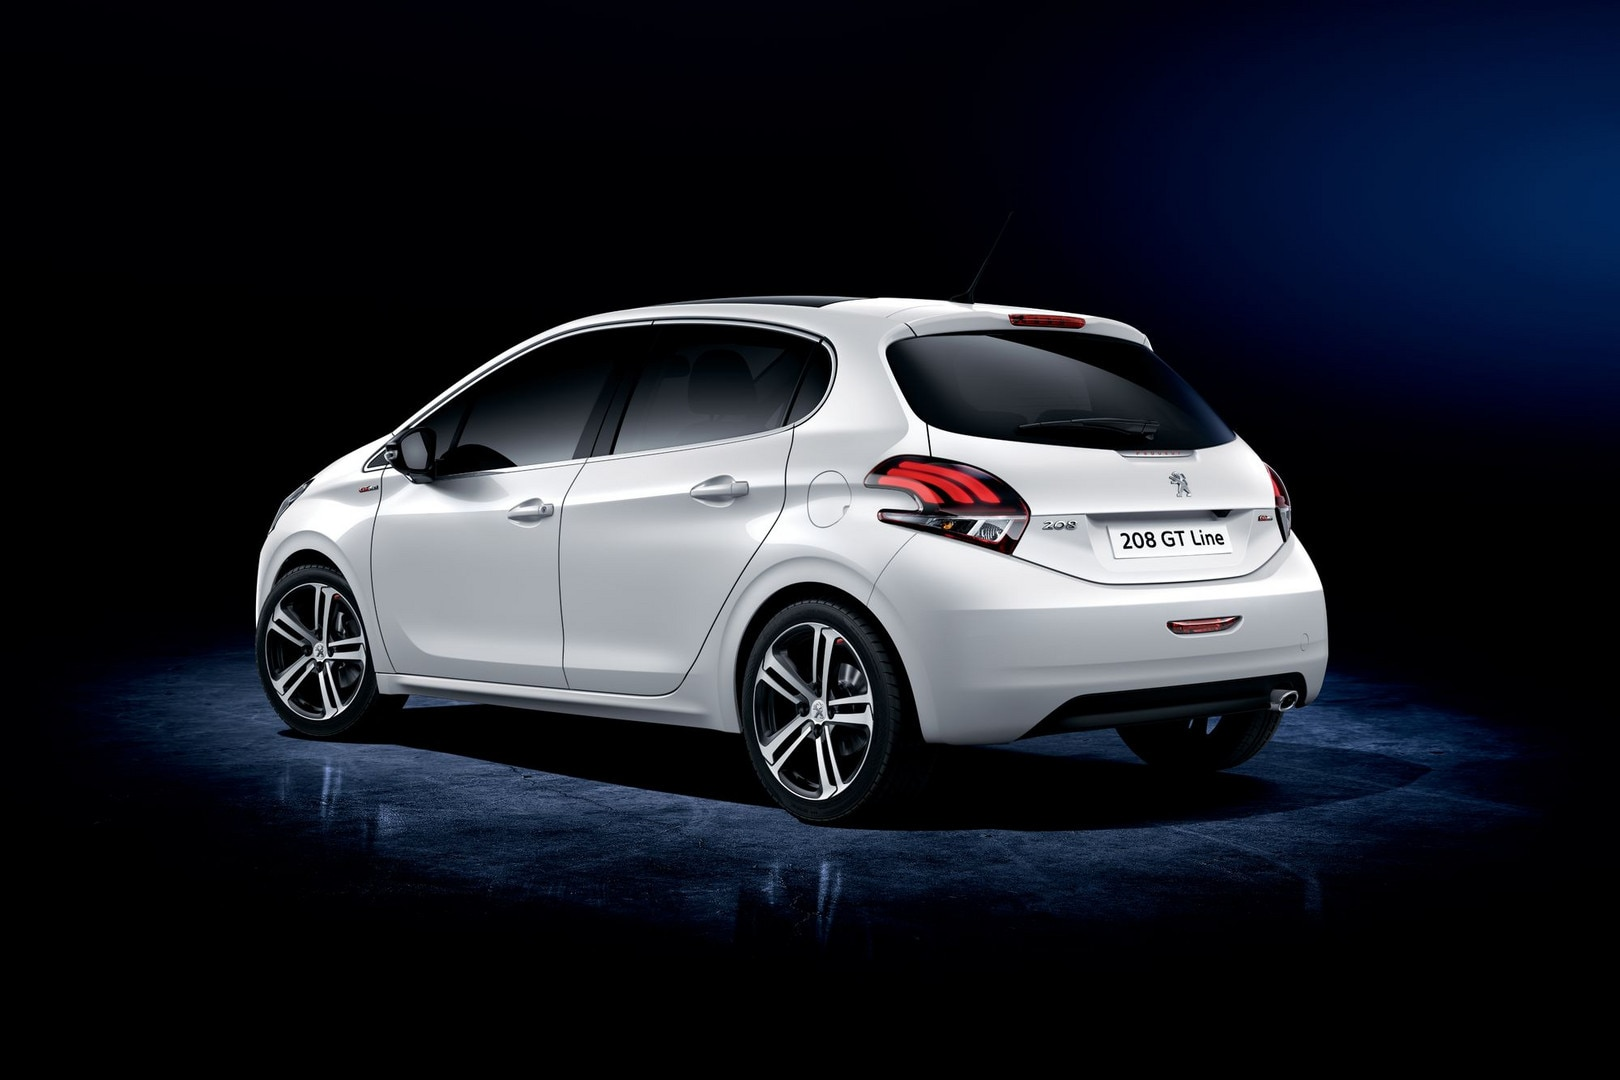 peugeot 208 gt line sportieve en compacte auto van peugeot. Black Bedroom Furniture Sets. Home Design Ideas